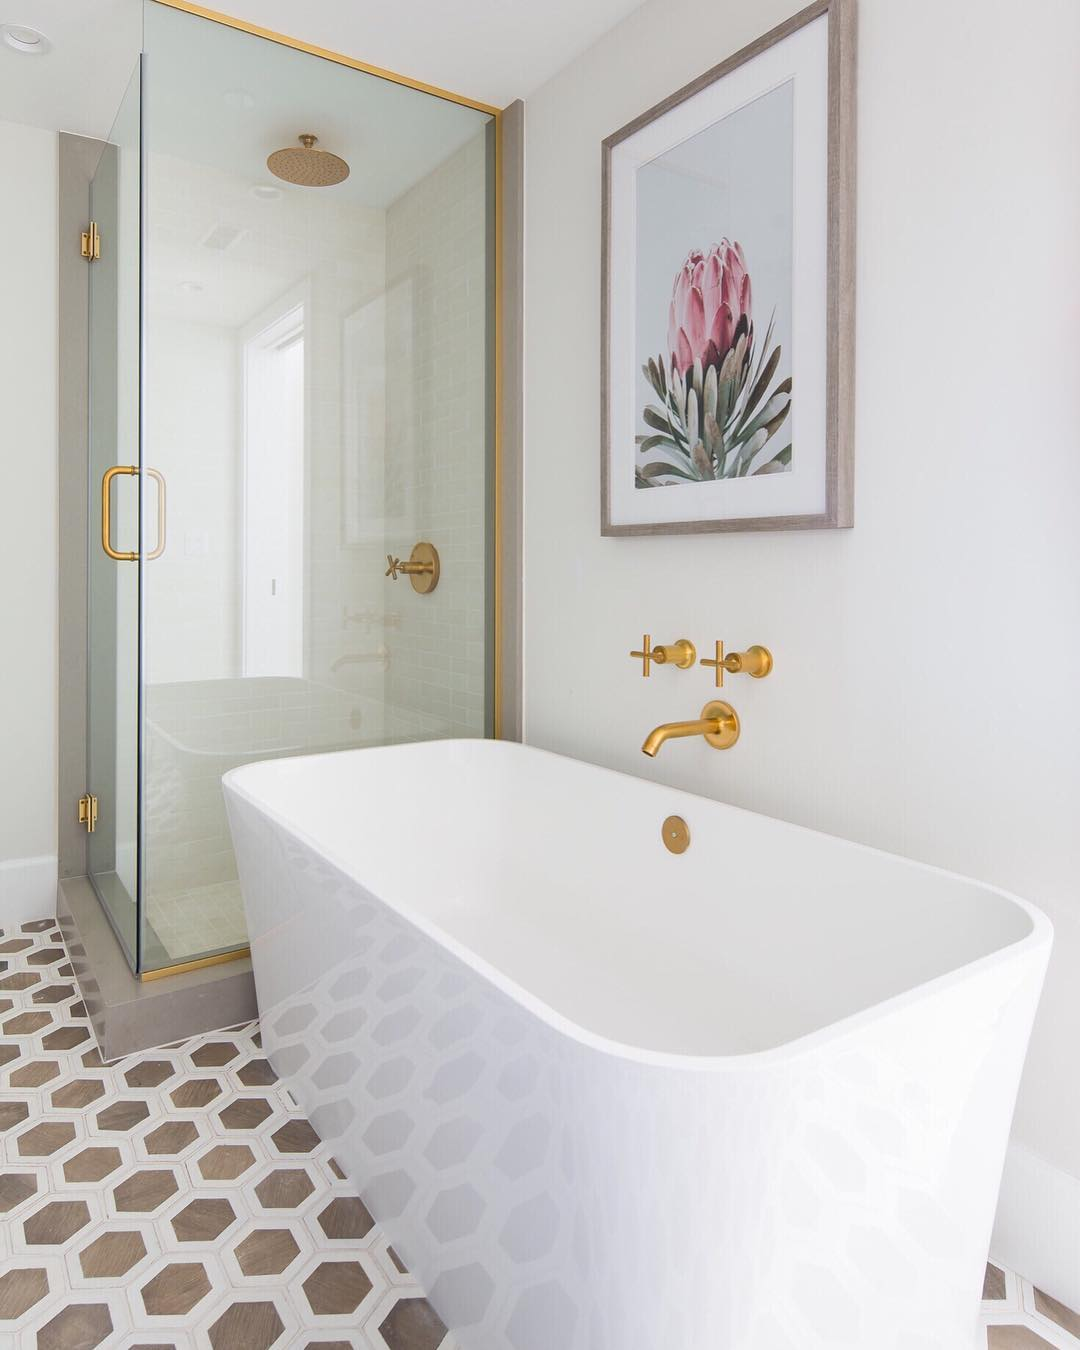 Bathroom - via @brookewagnerdesign